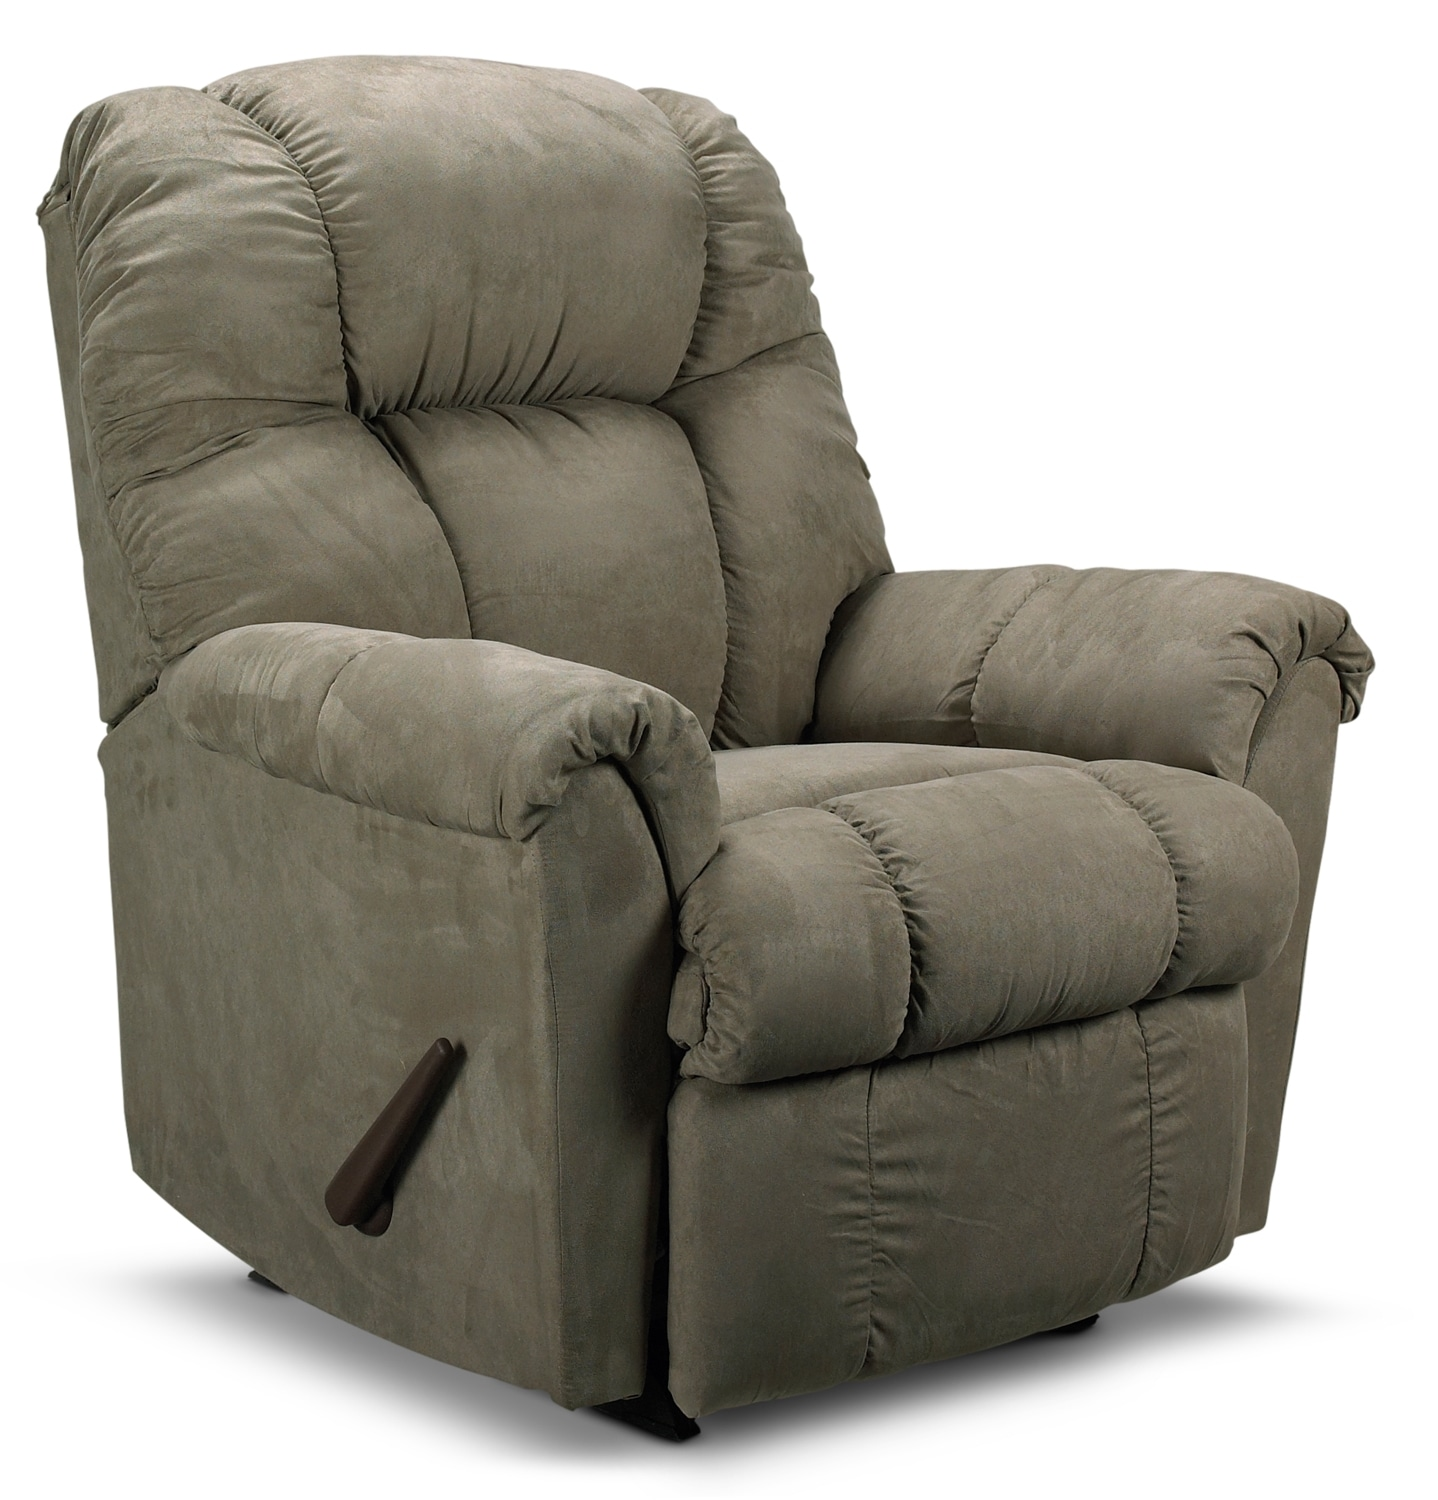 Living Room Furniture - Benson Rocker Recliner - Sage